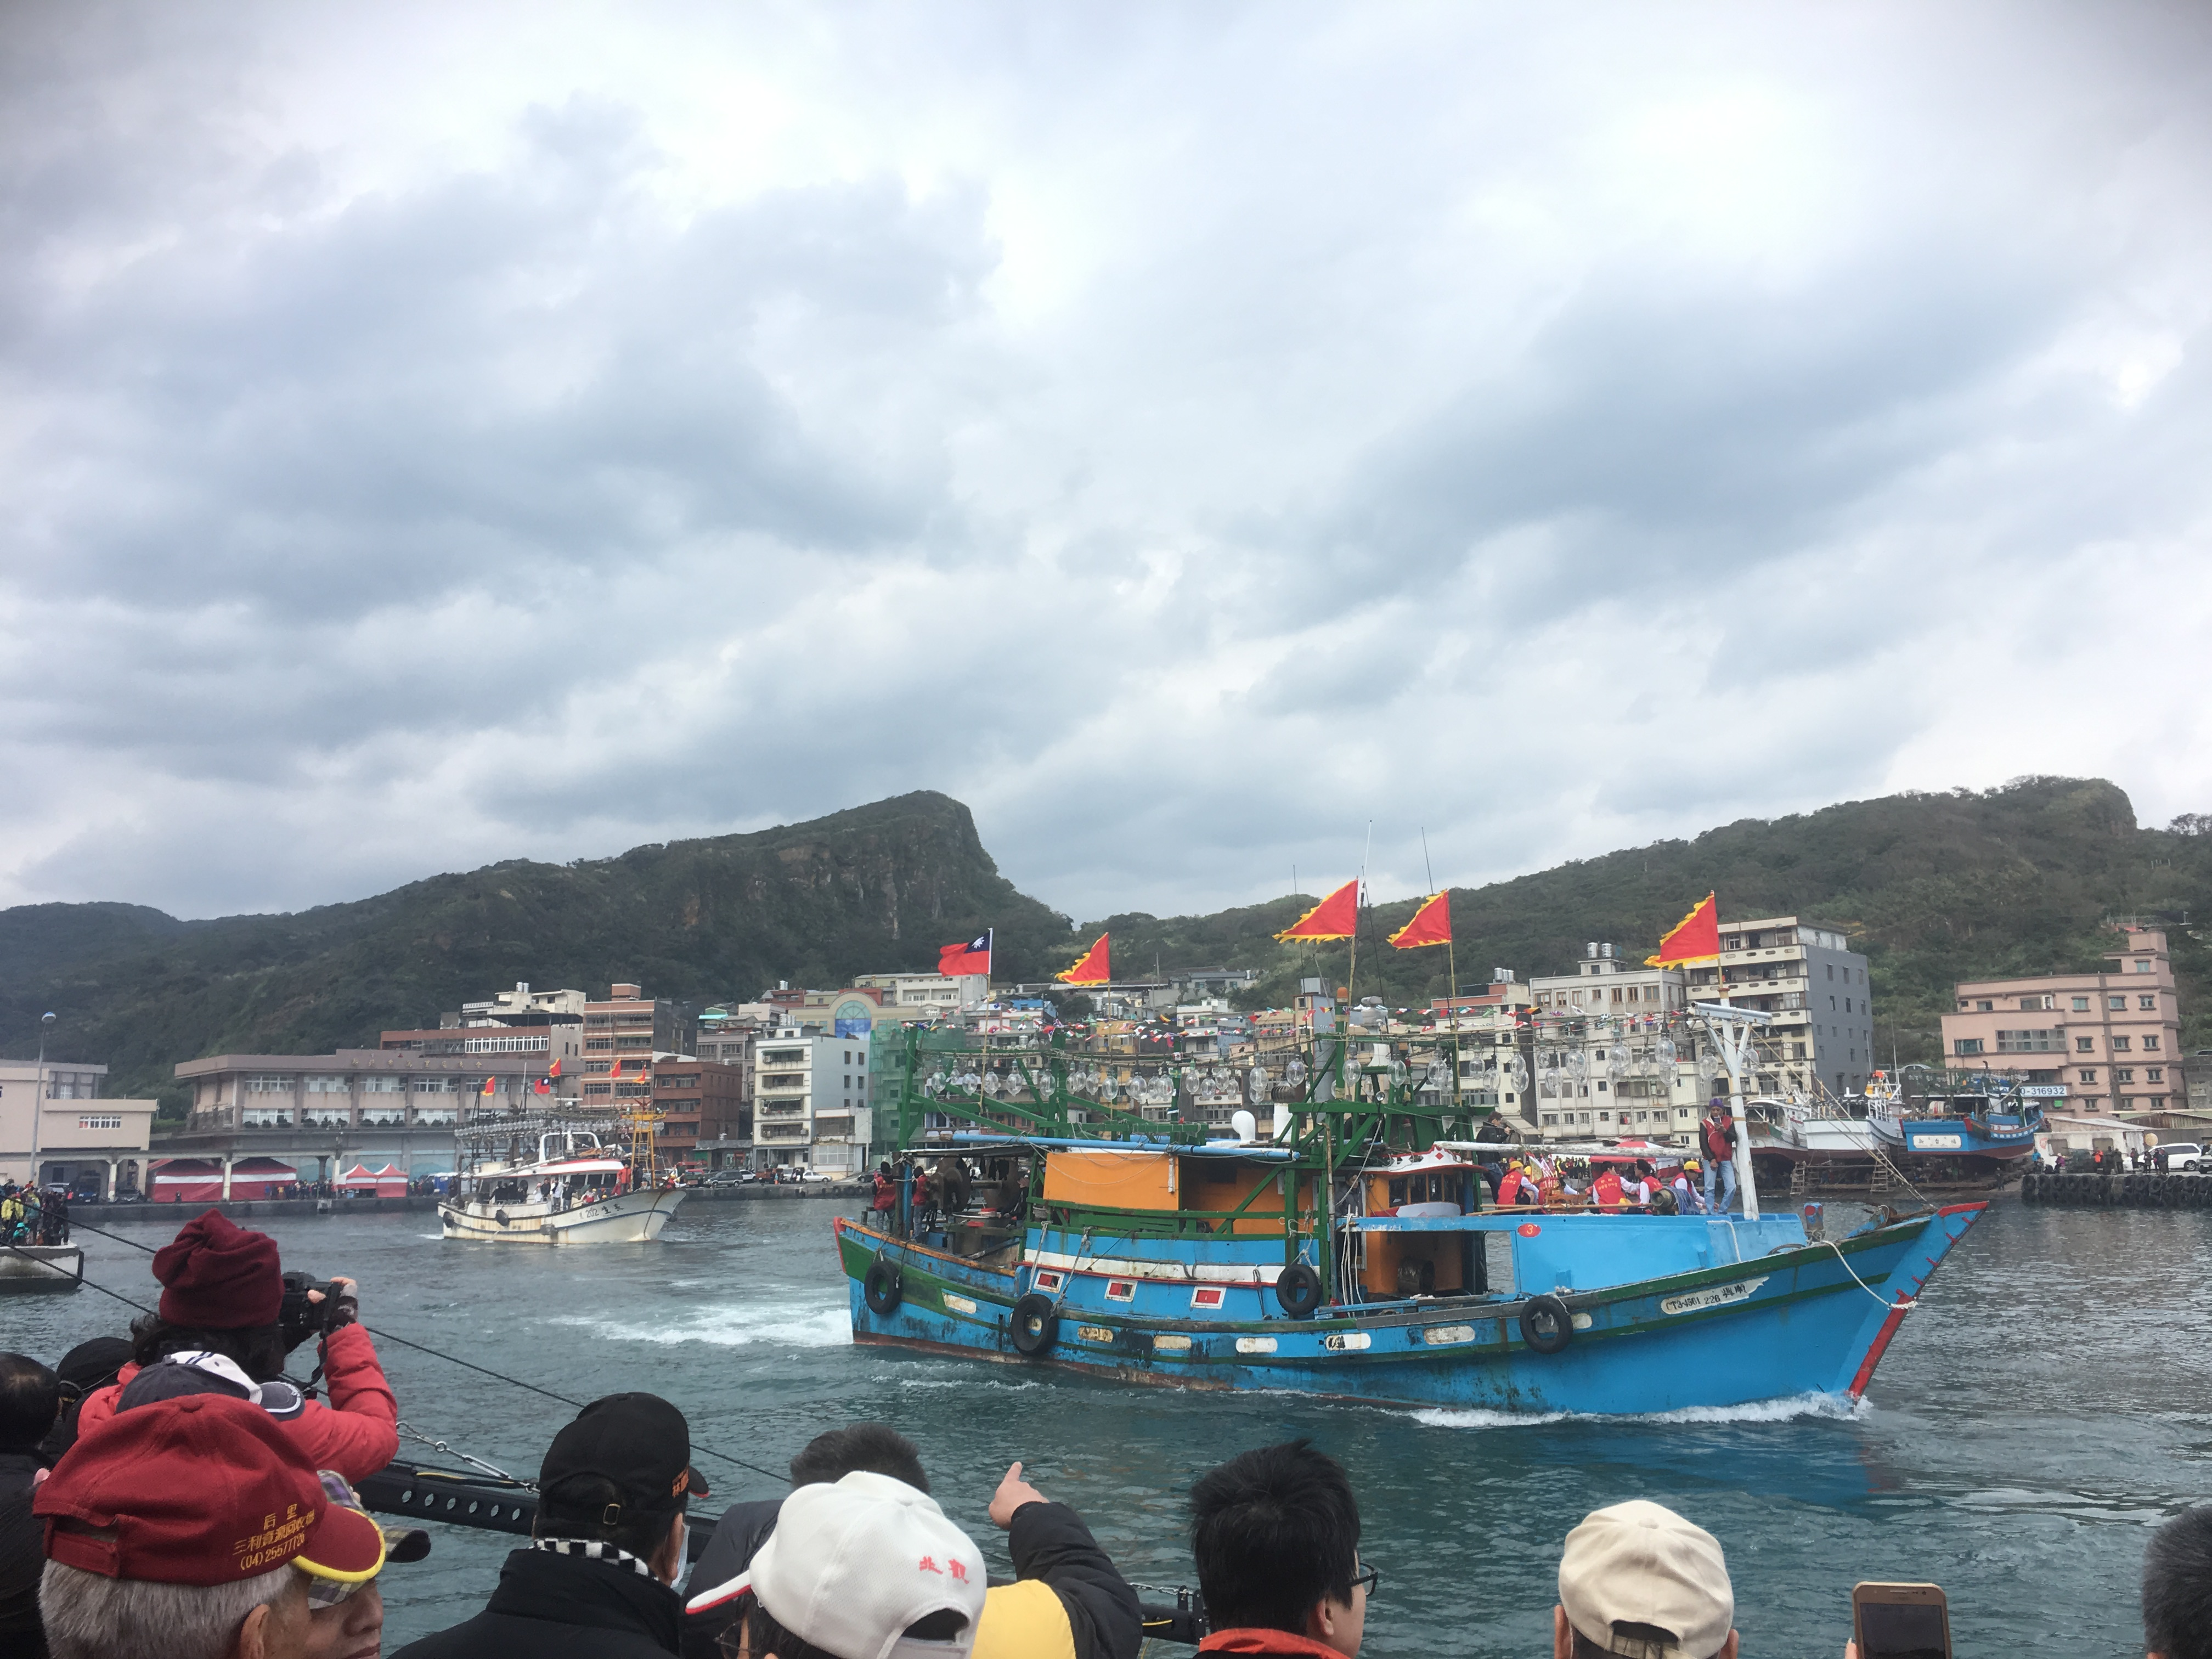 Harbor Purification Festival – marine purification and patrol event